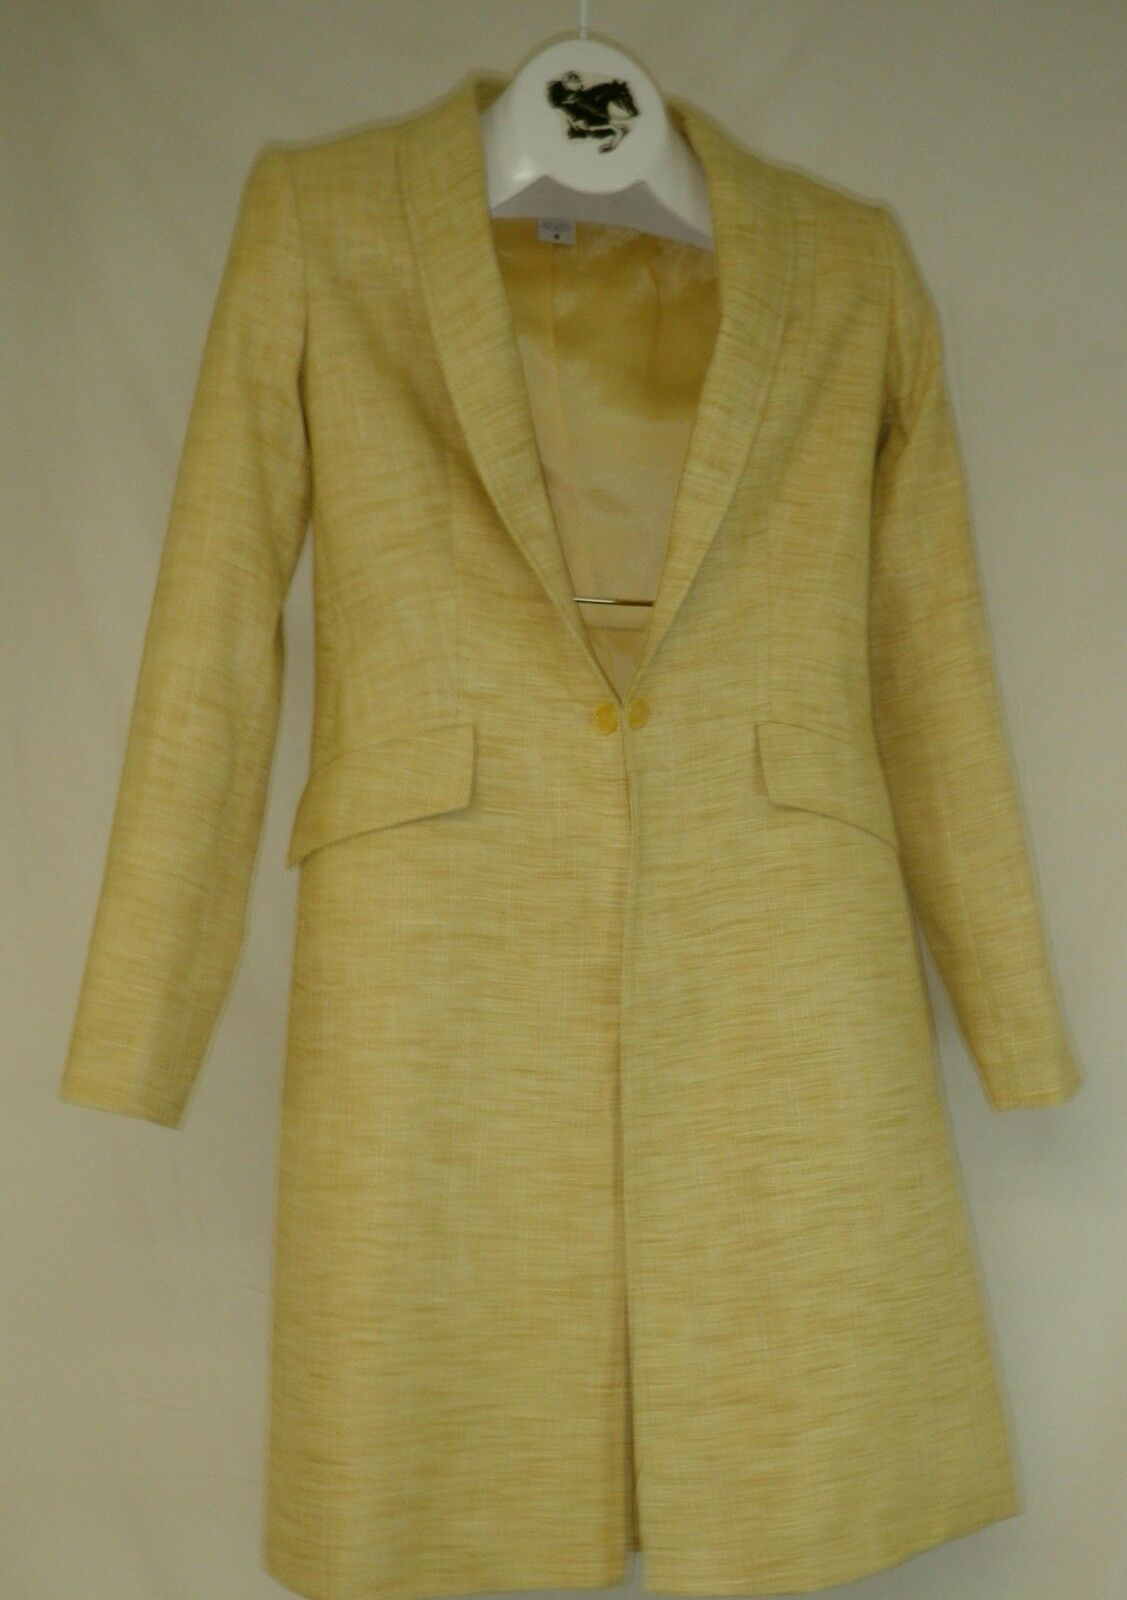 Reed  Hill Ladies Saddleseat Day Coat Yellow Linen Poly   Blend size 14 - USA  sale online save 70%